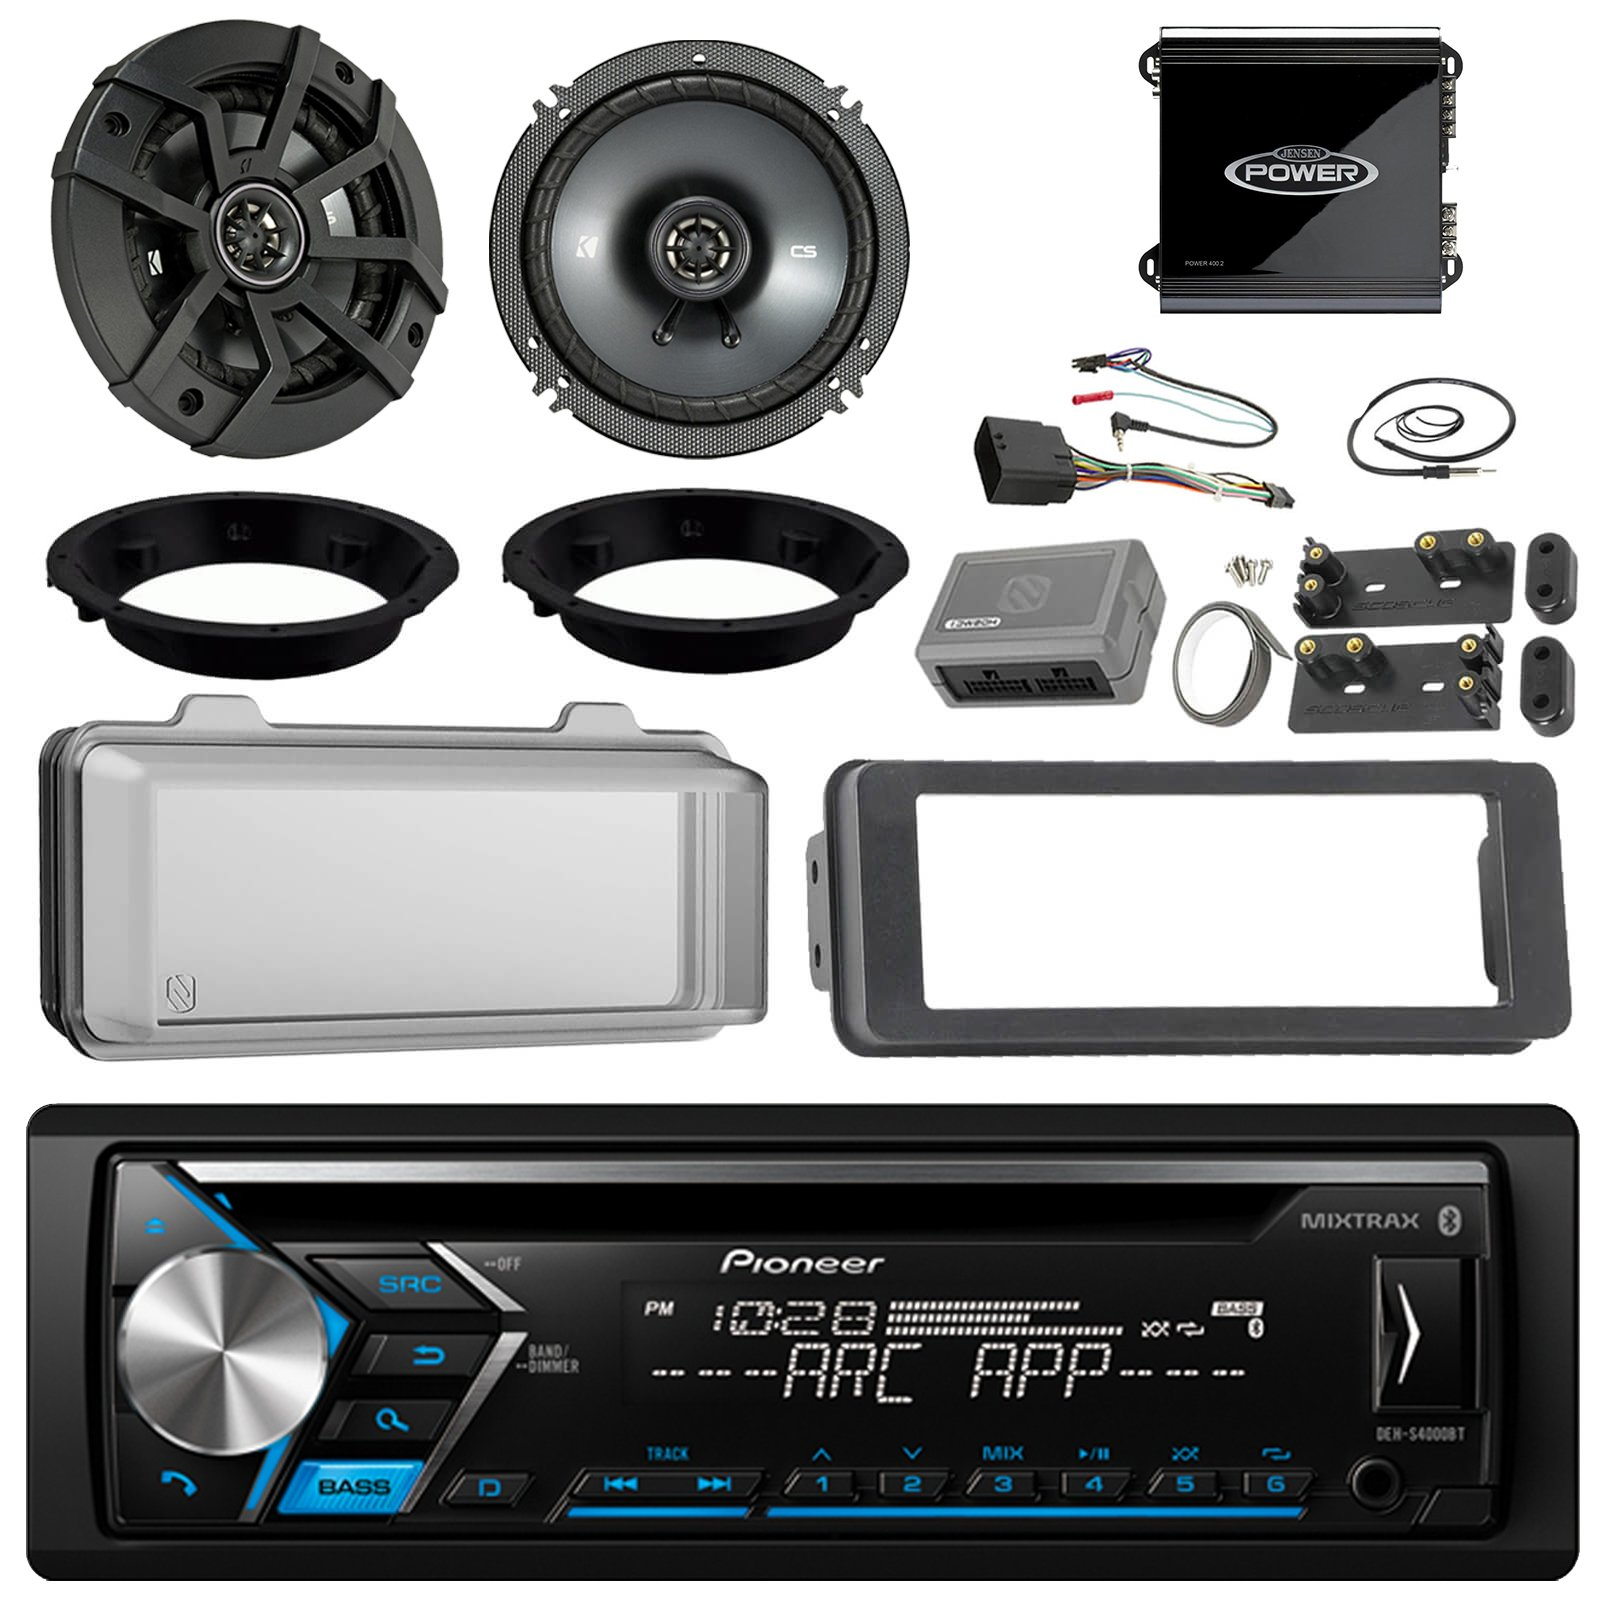 Pioneer DEH-S4000BT CD Receiver Bundle / 2 Kicker 6.5'' Speaker + Motorcycle Speaker Adapters + Amplifier + Dash Kit W/ Radio Cover + Handle Bar Conrol for 98-2013 Harley Davidson + Enrock Antenna